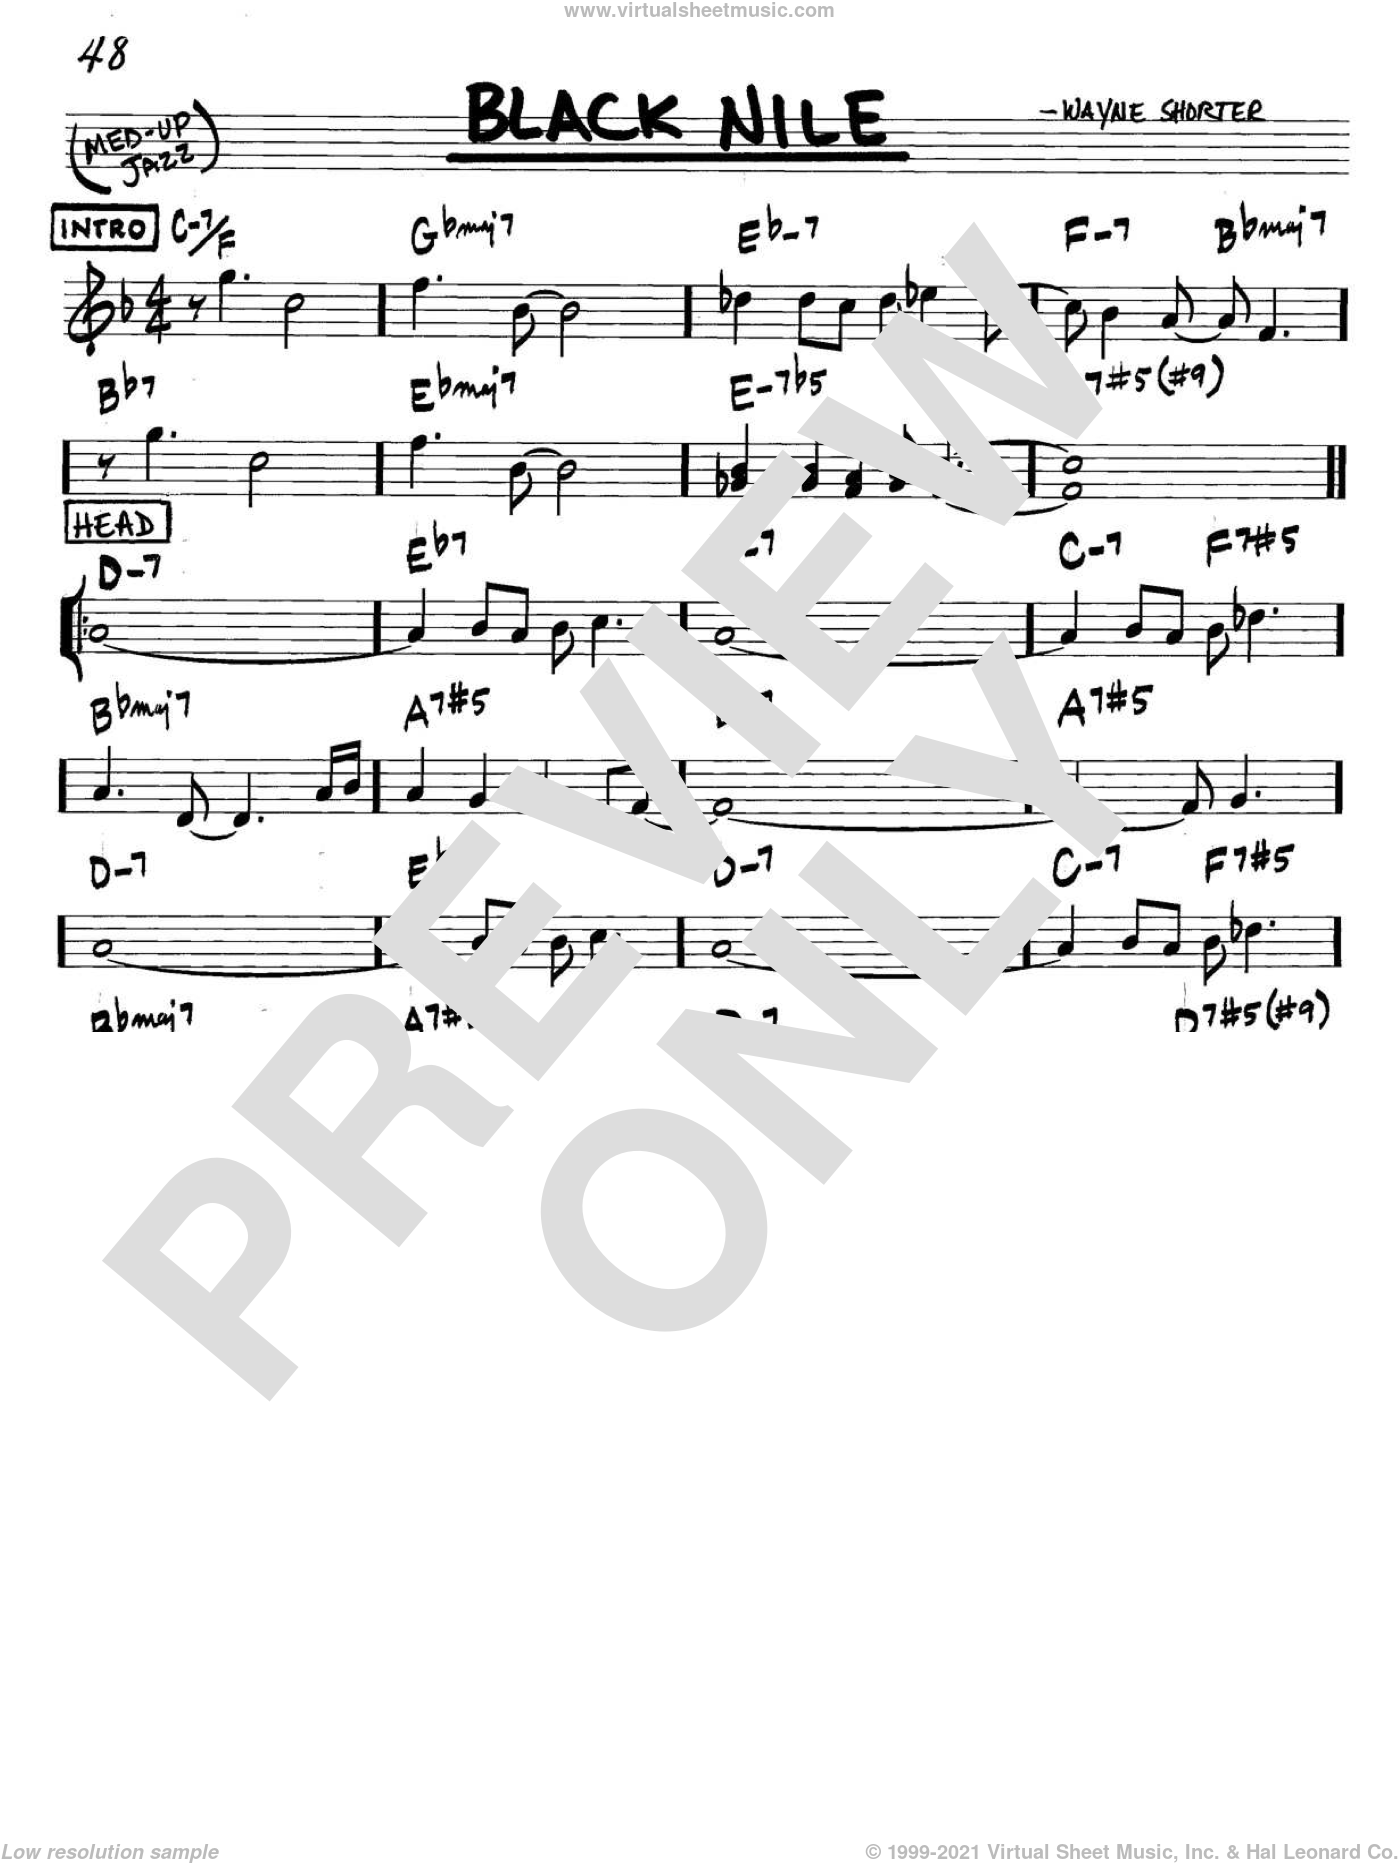 Black Nile sheet music for voice and other instruments (C) by Wayne Shorter. Score Image Preview.